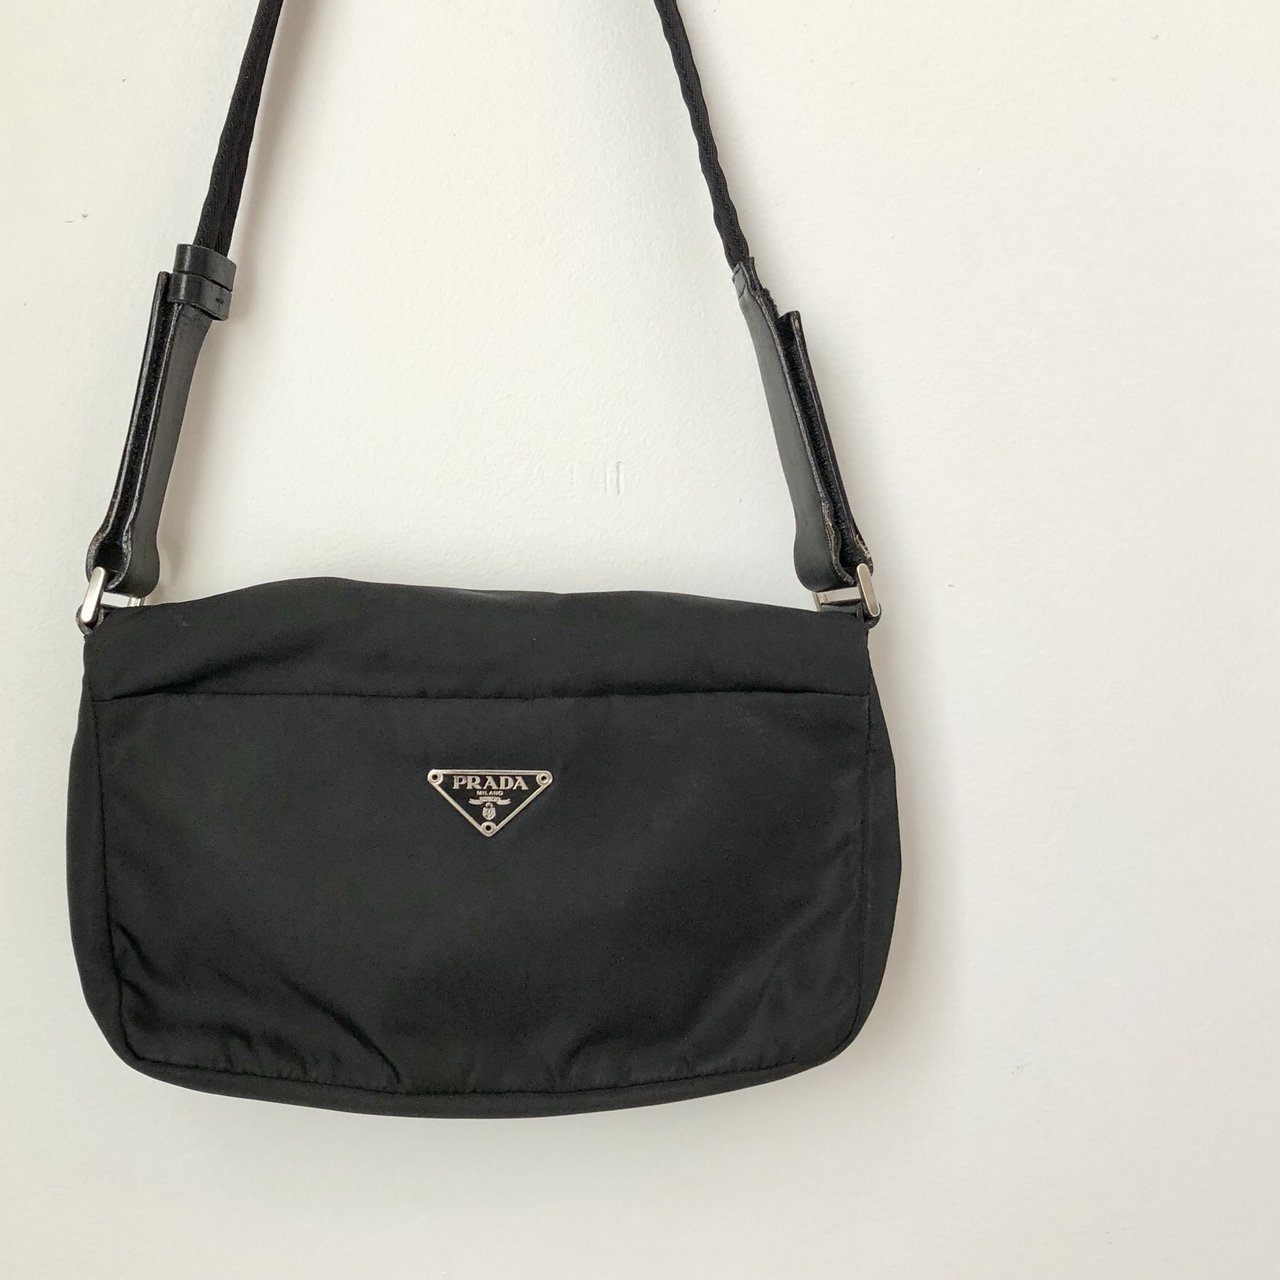 9a69c0a1ed27 Prada Nylon Shoulder Bag Authentic Prada Black Nylon Bag. 3 - Depop